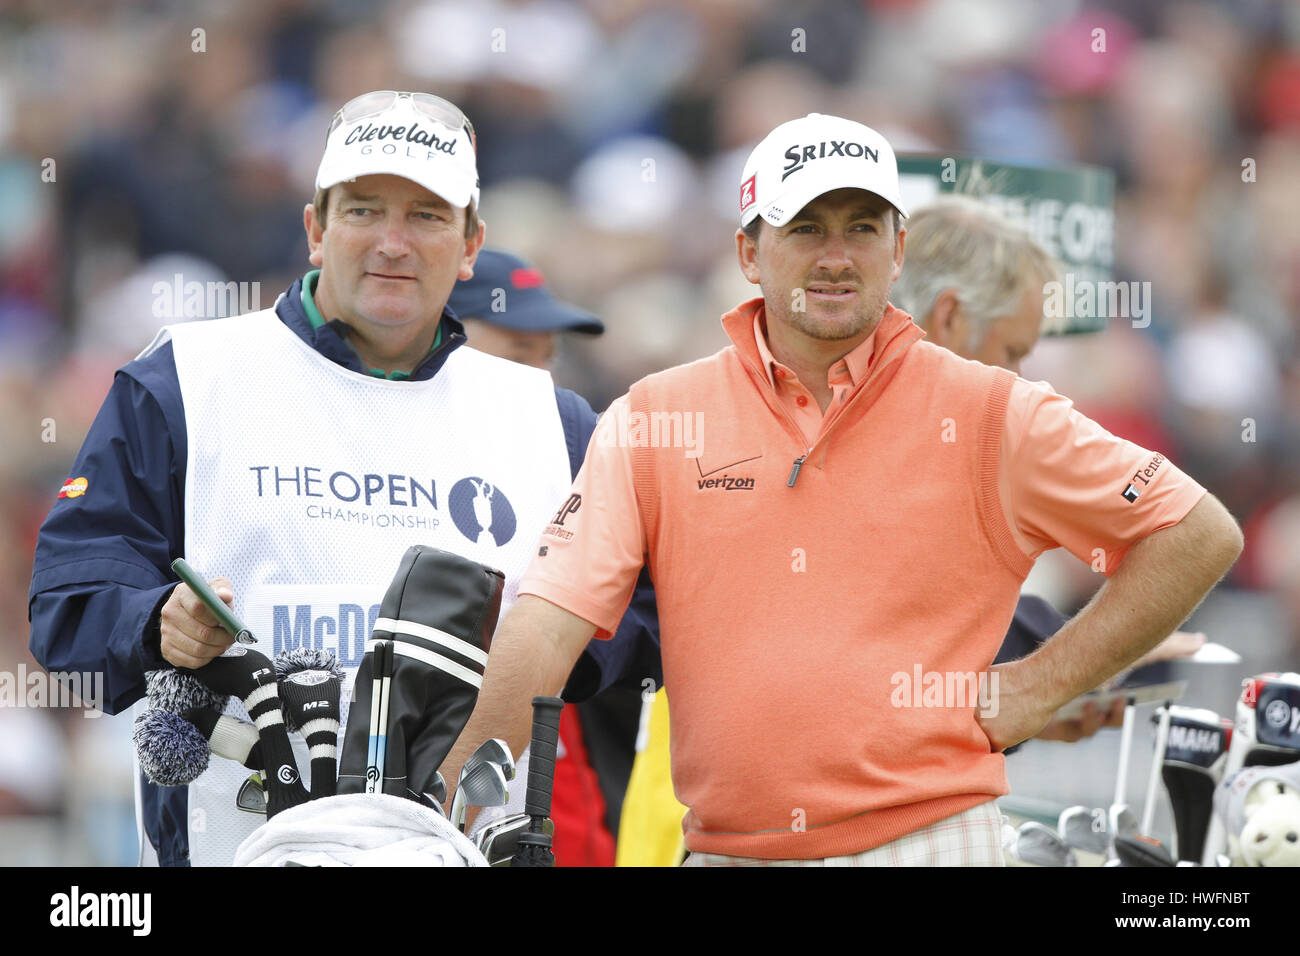 GRAEME MCDOWELL NORTHERN IRELAND NORTHERN IRELAND LYTHAM & ST.ANNES LANCASHIRE ENGLAND 20 July 2012 - Stock Image